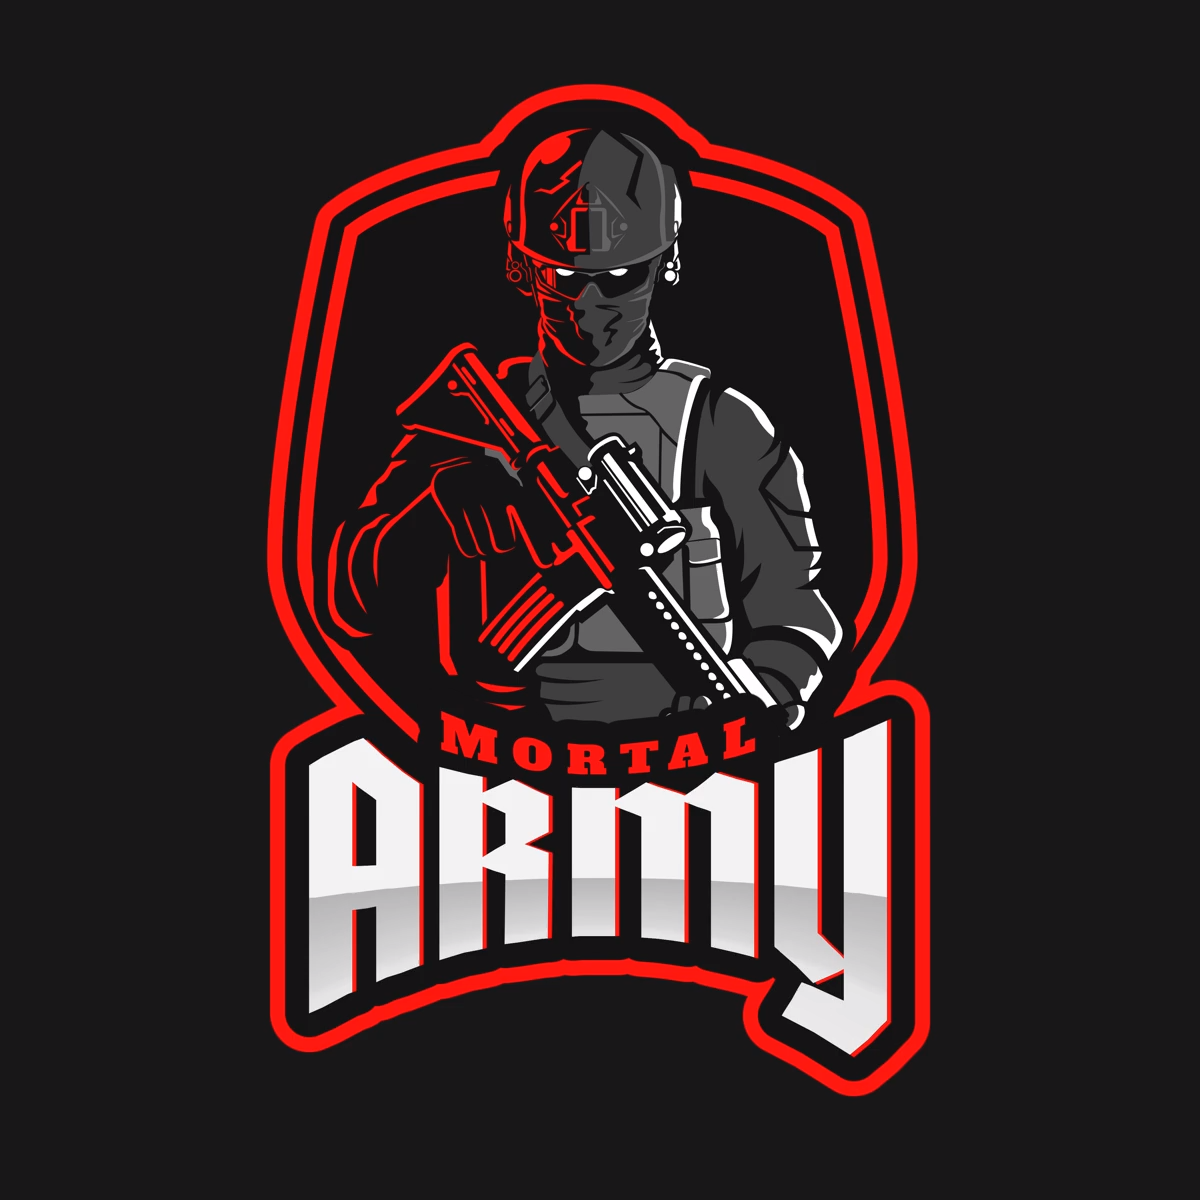 Placeit Counter Strike Inspired Logo Maker With A Menacing Character Illustration Video Video In 2020 Character Illustration Logo Design Inspiration Graphics Logo Maker